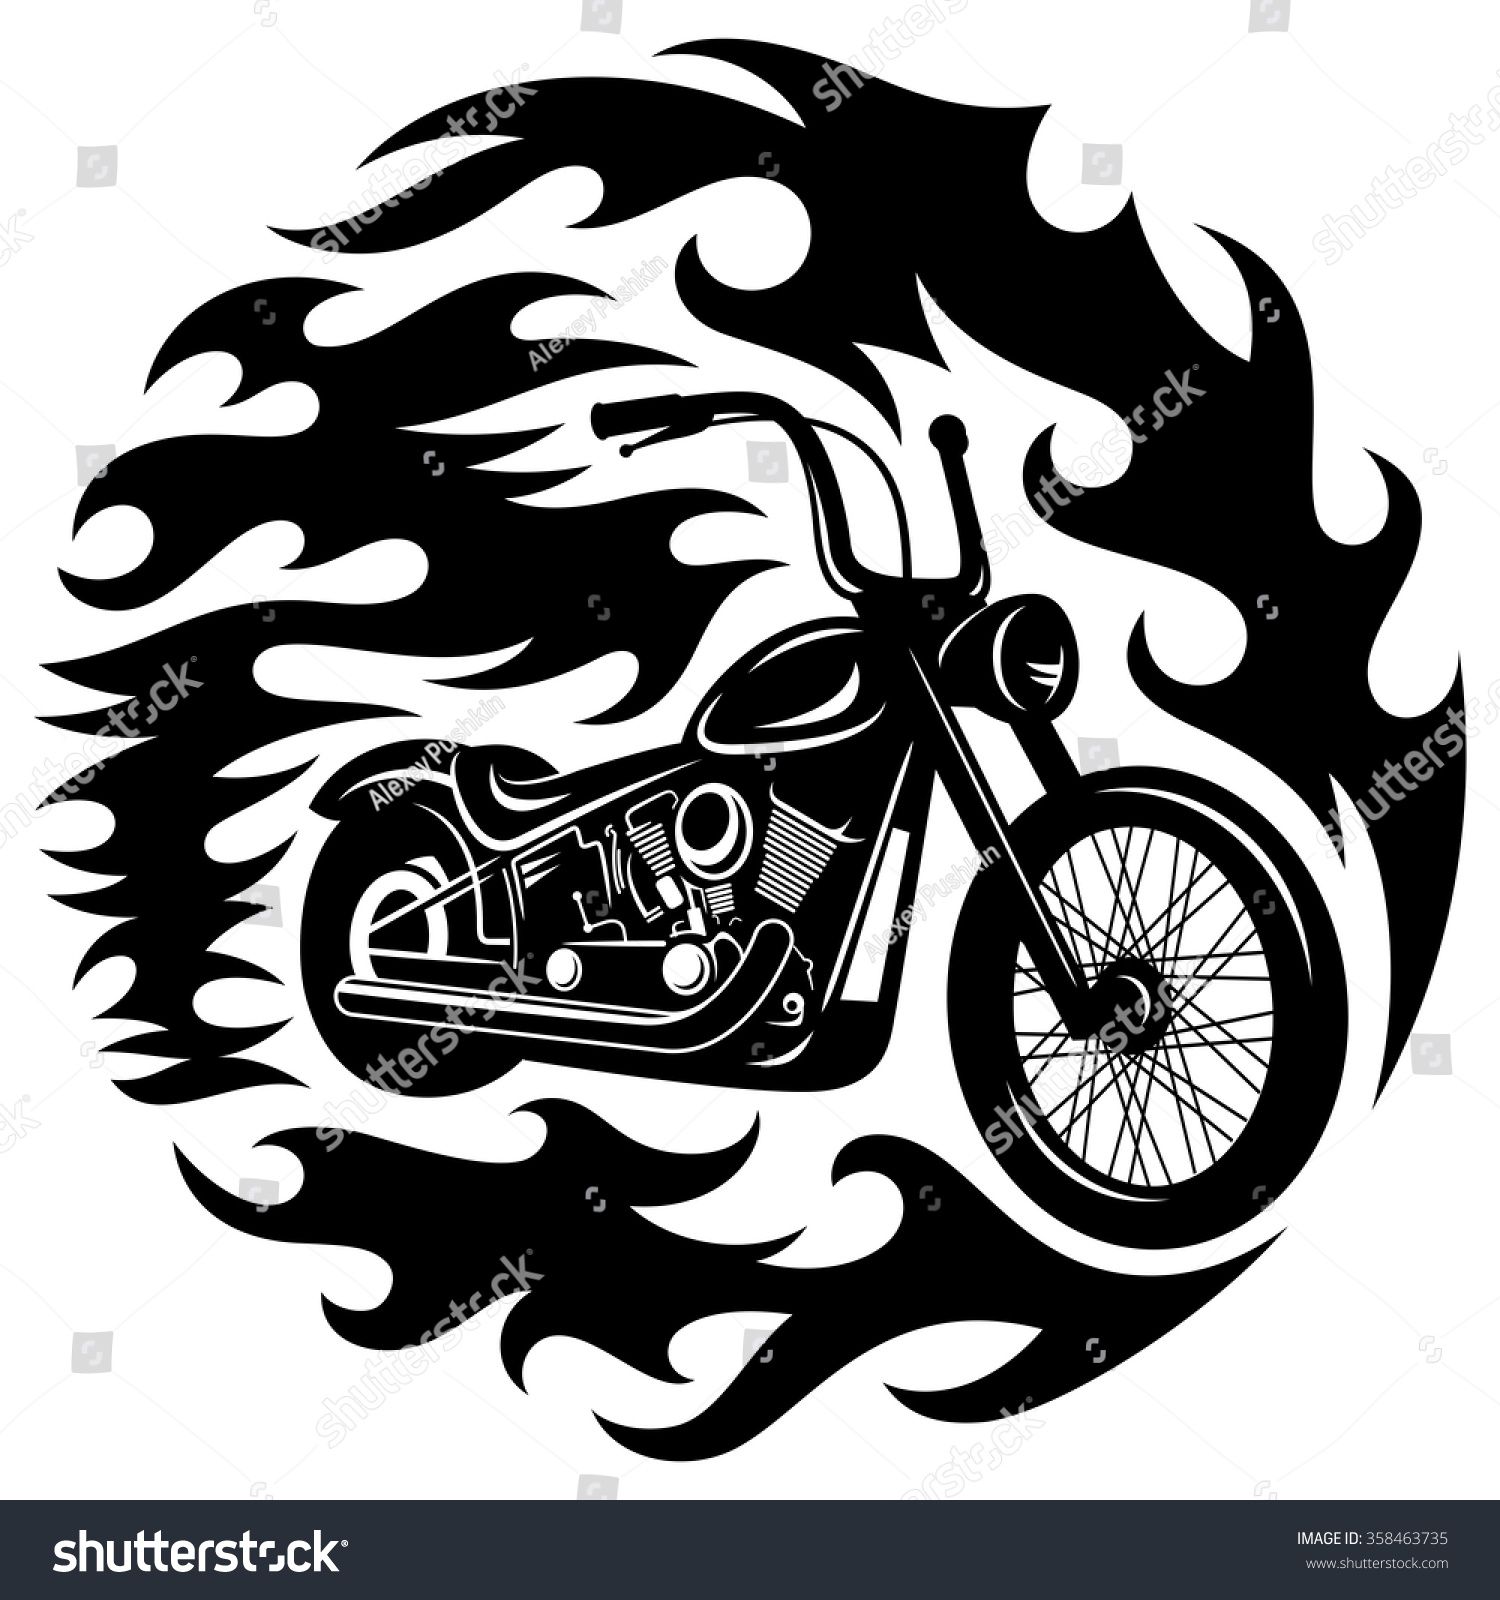 Motorcycle clip art with flames - Classic Chopper Motorcycle With Spurts Of Flame T Shirt Print Graphics